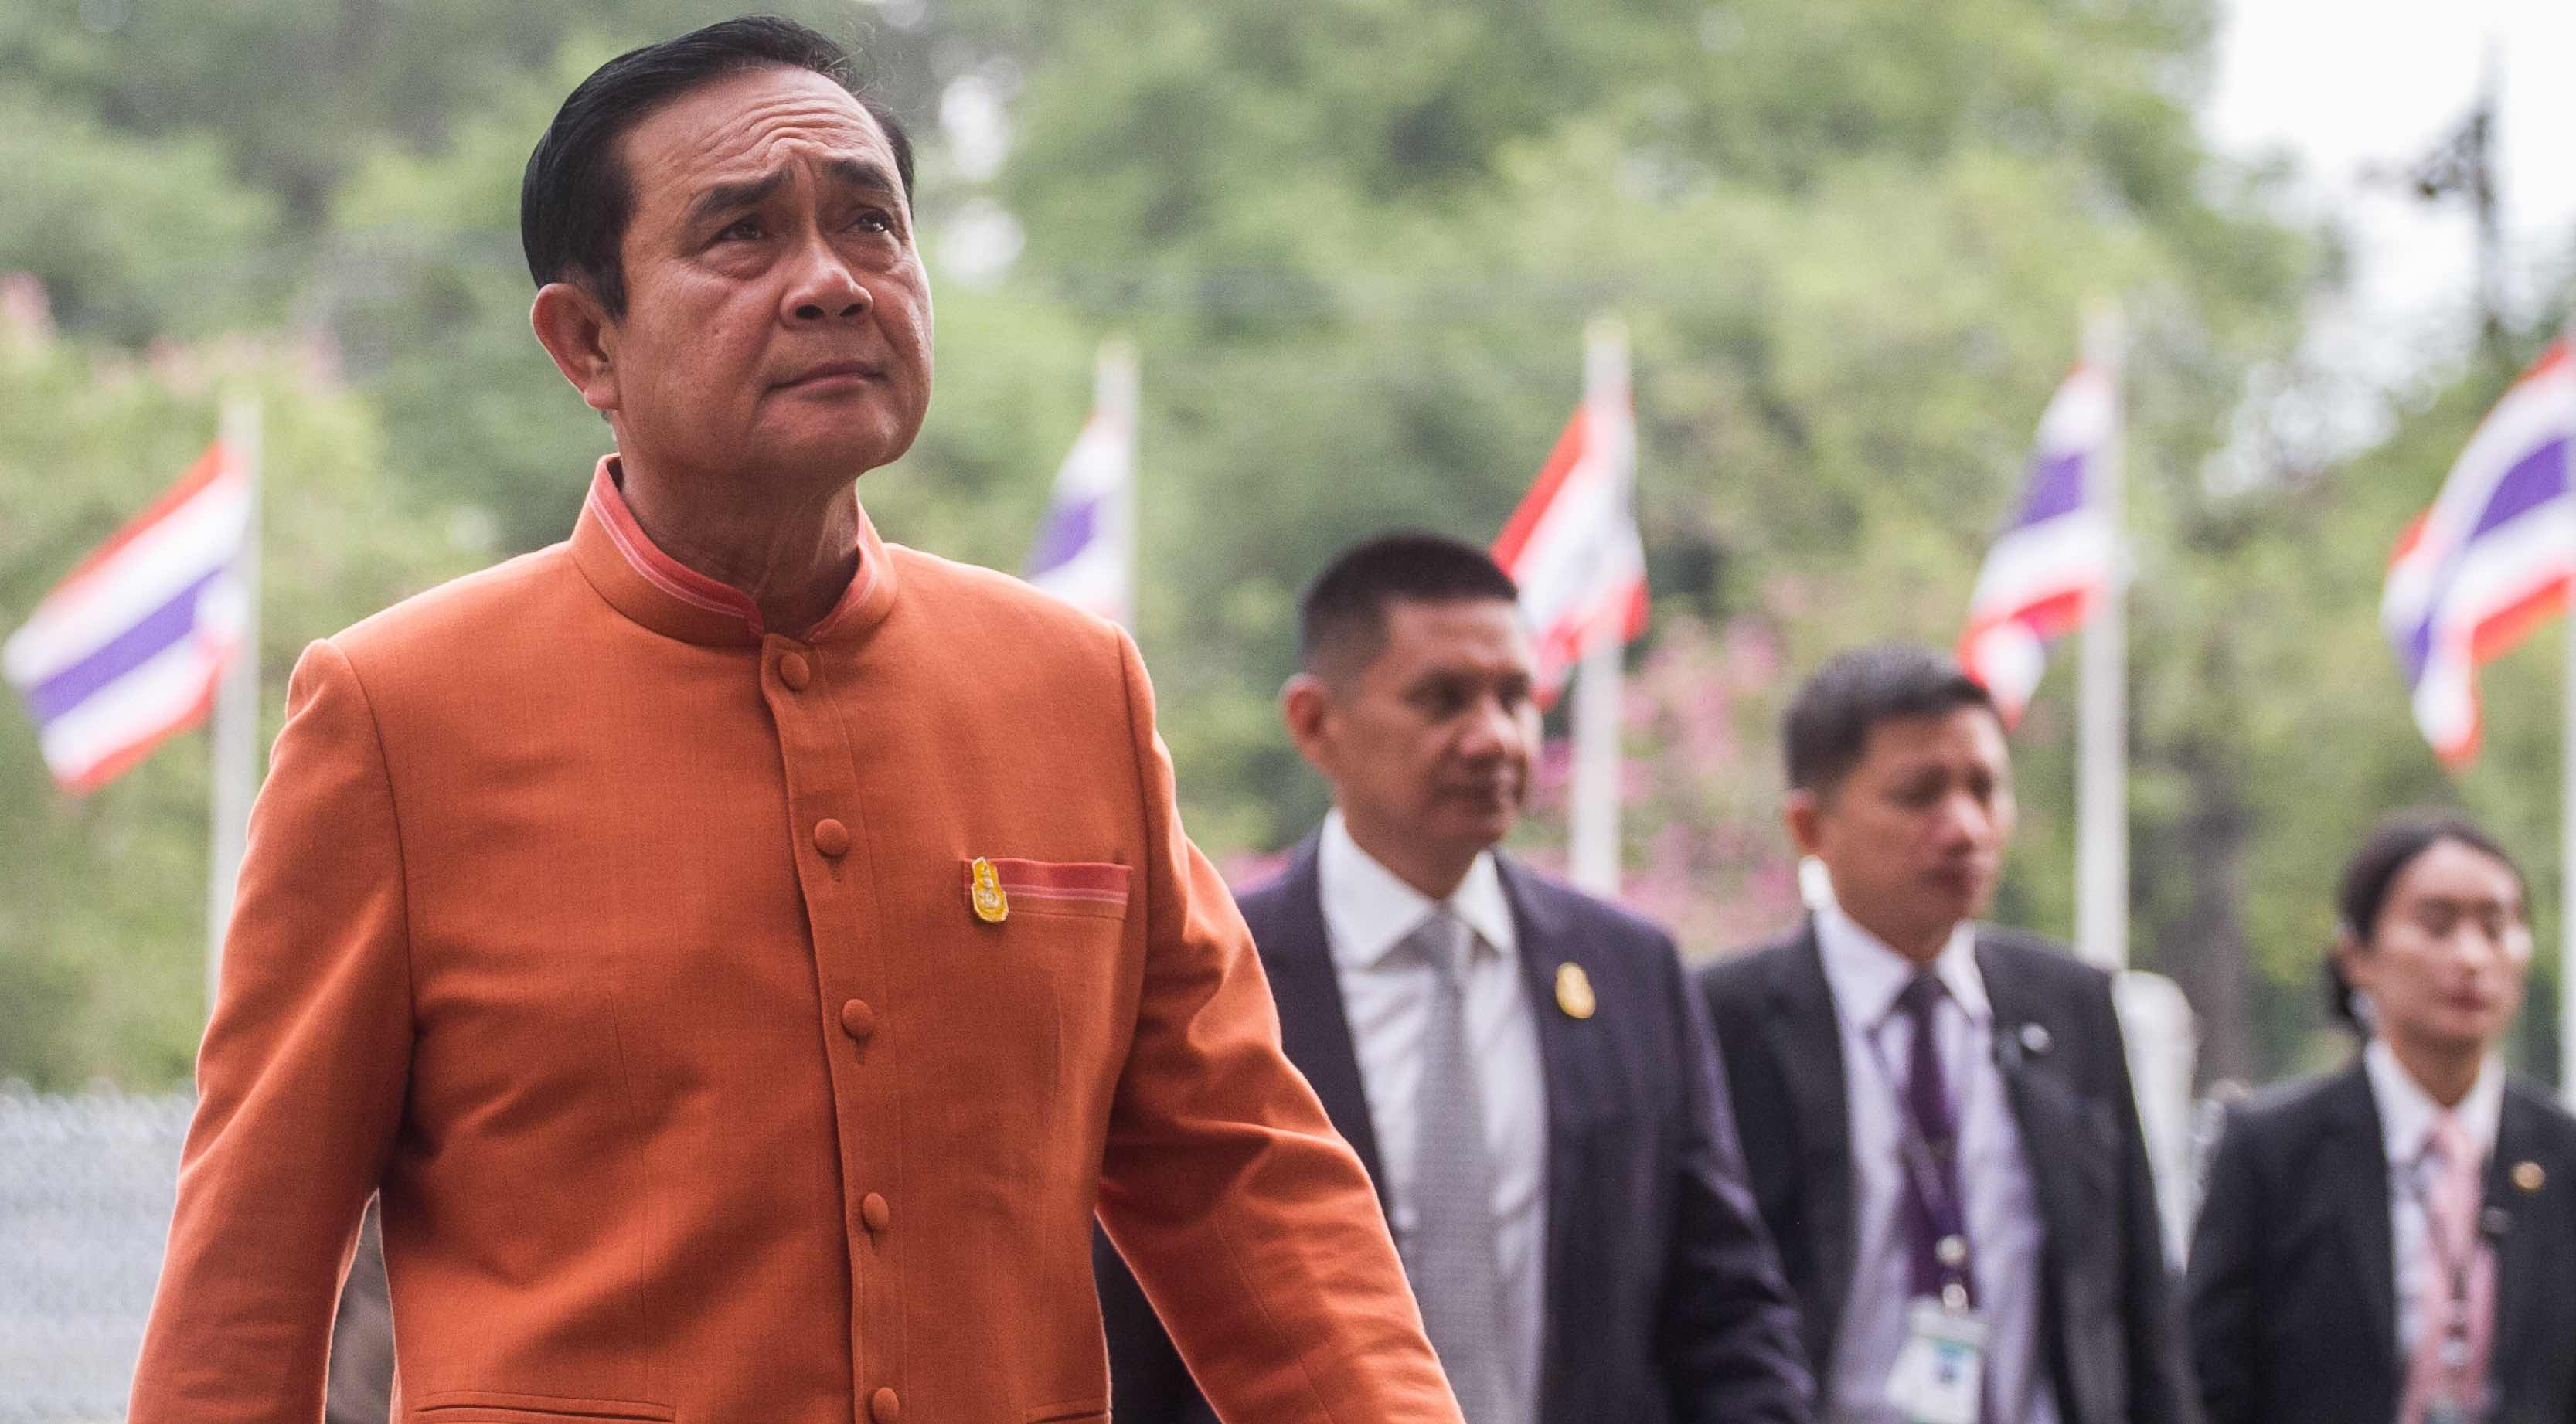 Thailand's Prime Minister Prayut Chan-ocha in January (Photo: Vichan Poti/Getty)